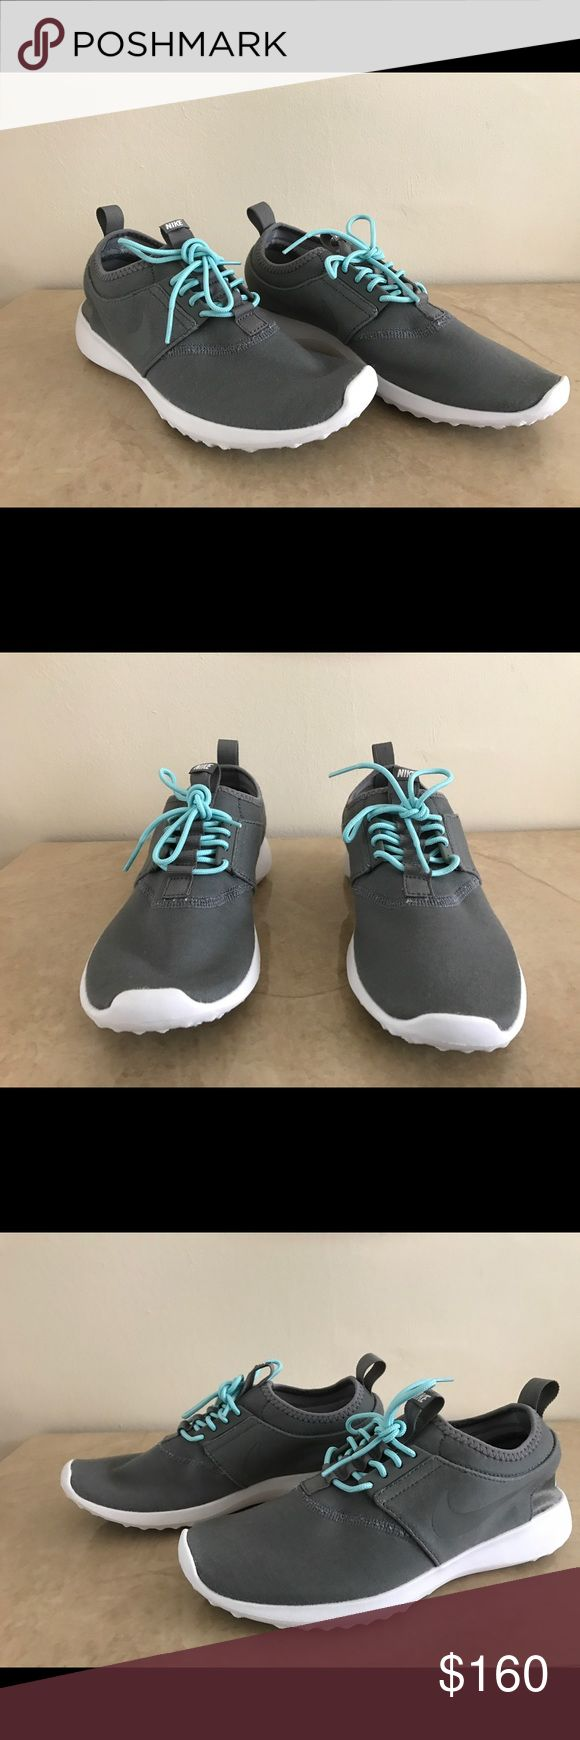 Nike ID Juvenate Fleece Gray Women's Size 8 Nike ID Juvenate Fleece Gray Women's size 8 - Brand New without Box 👟Hard to Find 😉 fits perfect size 7.5 😃 PRICE IS FIRM!!! Nike Shoes Athletic Shoes